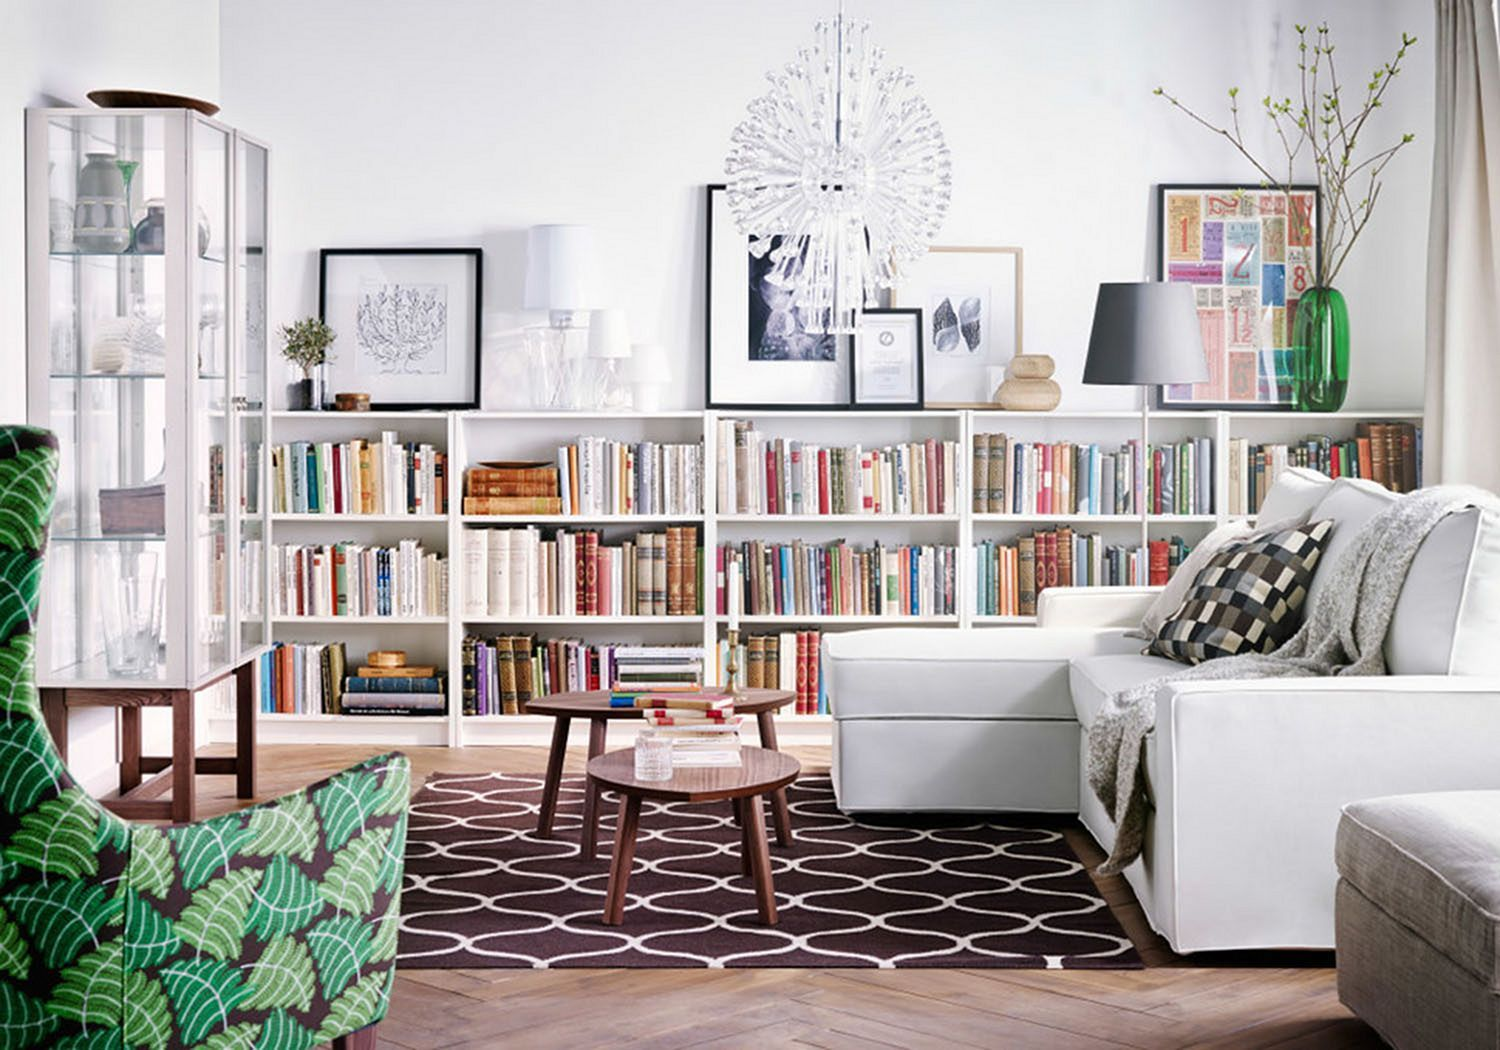 22 Most Creative Living Room Book Storage You Have To Know